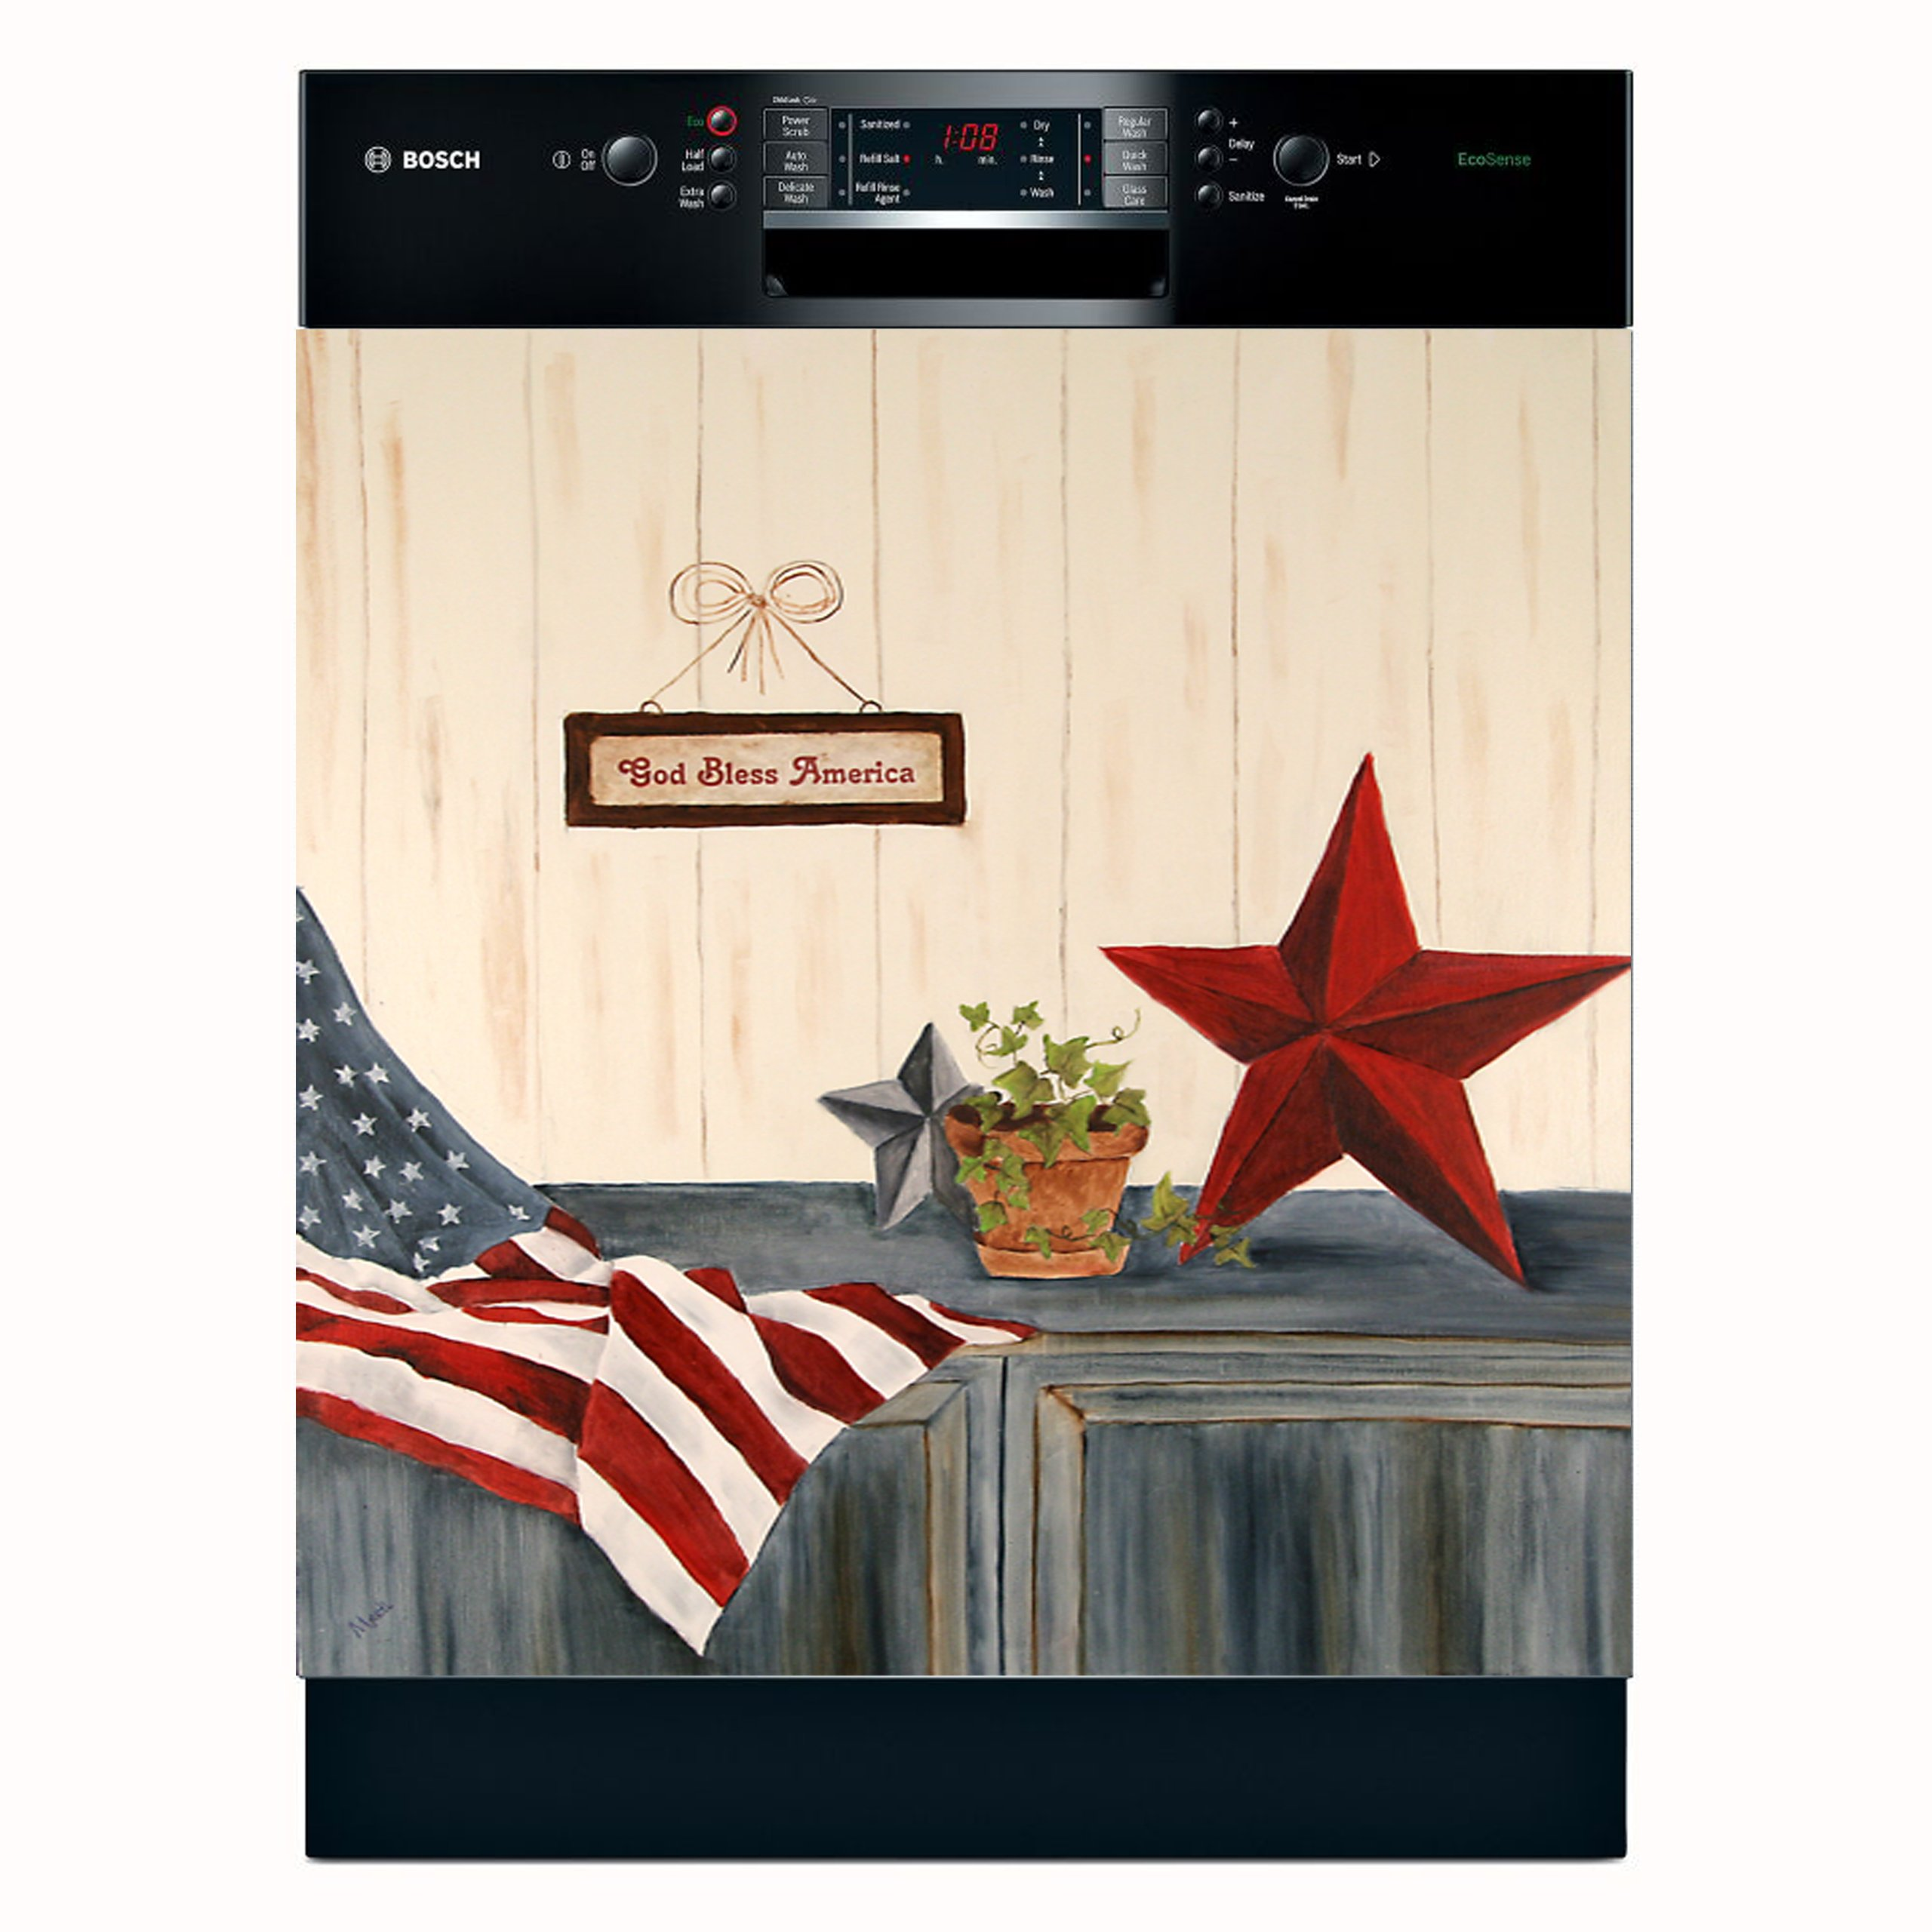 Stars & Stripes Dishwasher Magnet Cover (Large) by APPLIANCE ART